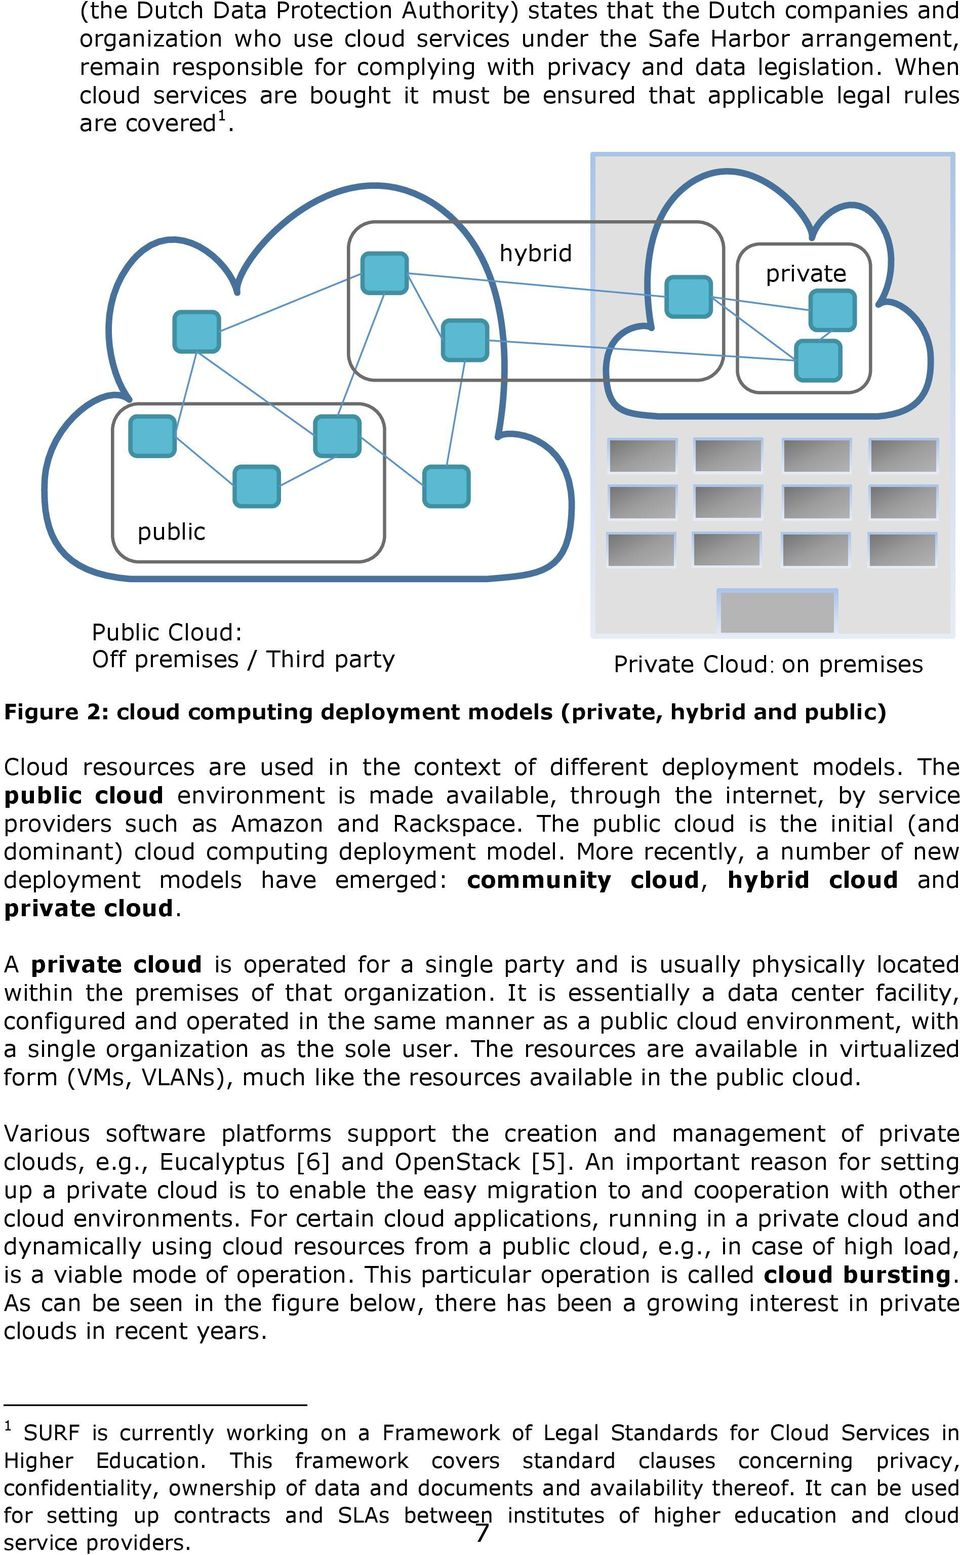 hybrid private public Public Cloud: Off premises / Third party Private Cloud: on premises Figure 2: cloud computing deployment models (private, hybrid and public) Cloud resources are used in the